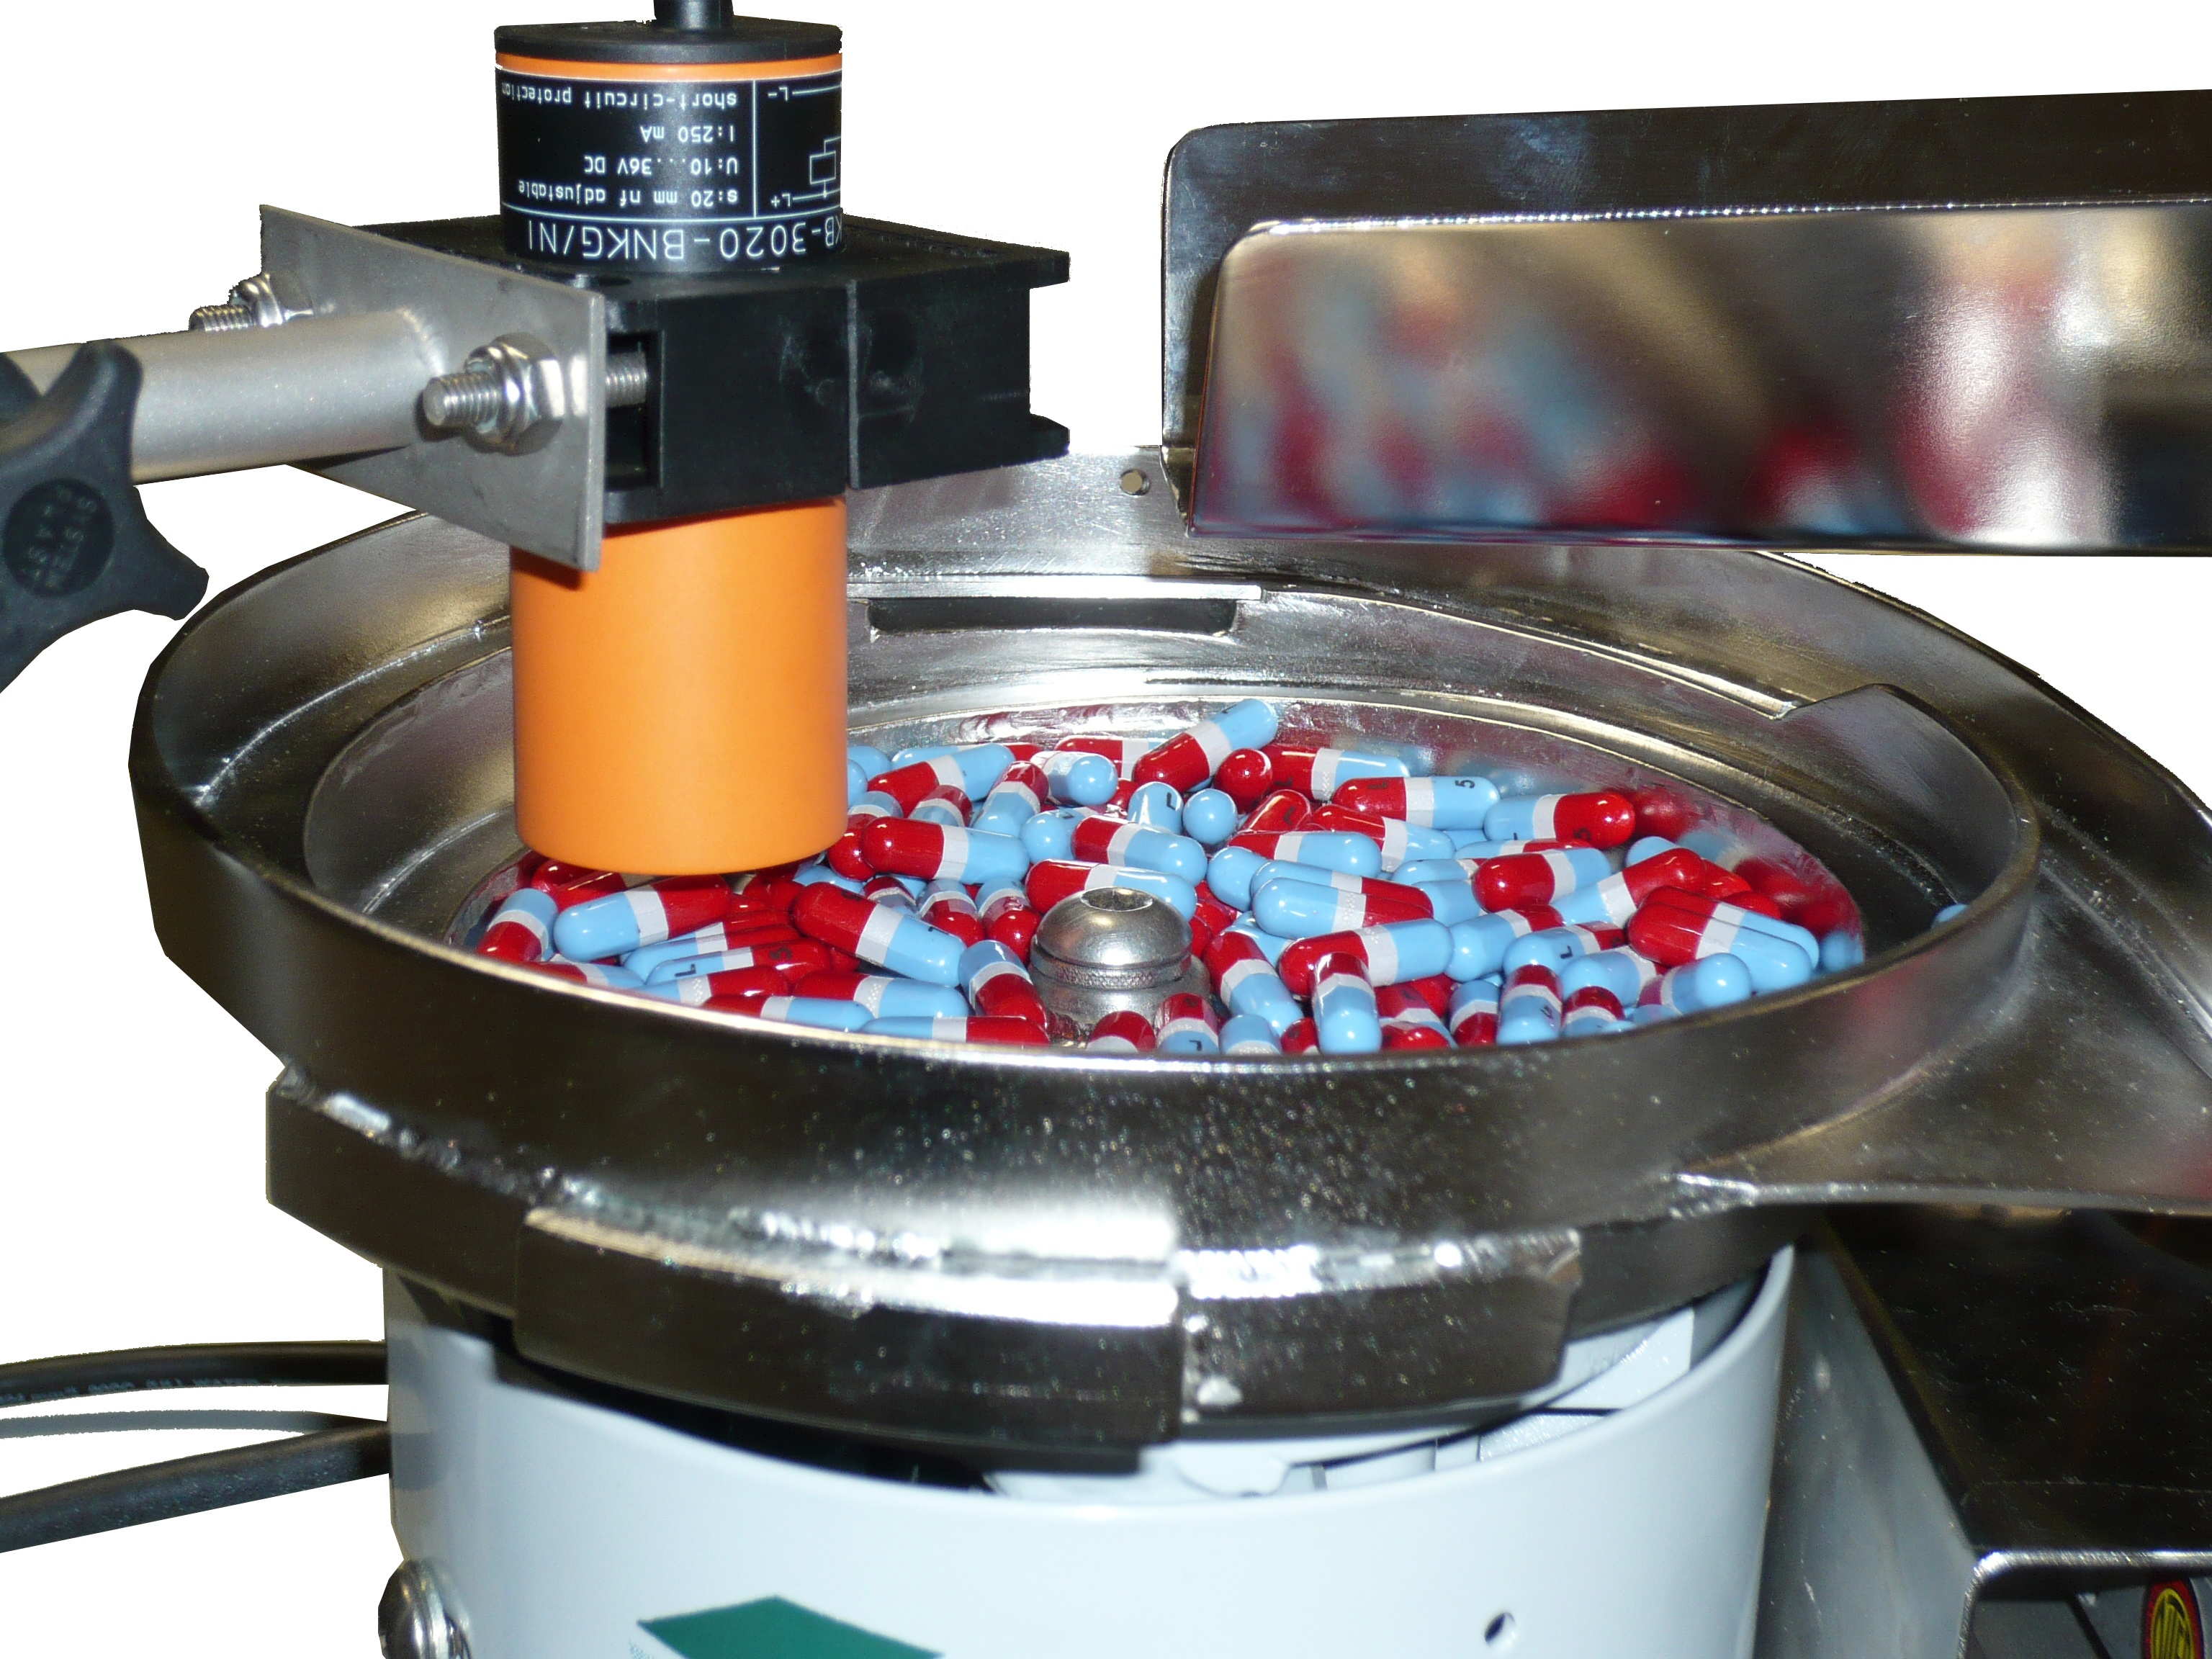 analytical scale for granulate, analytical scale for pharmaceuticals, analytical scale for powder, mg scale, analitycal scale, lab weighing scale, 0.0001, chemistry weight scale, precision scale model, weight machine price, weighing scale price, digital weight scale, weight scale, balance de laboratorie, laboratory balance, microscale, scientific scale, ultra micro balance, gram scale, digital scale, industrial scale, counting scale, digital weight scale, micro balance , Ultra Precision Net-Weight System, milligram scale for powders, milligram scale, pharmaceutics .0001 gram scale, biopharmaceutical .0001 gram scale, microgram scale, pharma equipment manufacturer in USA, pharma packaging machinery manufacturers, biotech pharma packaging machine, precision scale, precision balance, analytical balance, laboratory milligram scale,.0001 gram scale, 1 mg scale, ultra precision scale, precision weight scale, milligram scale where to buy, powder dispensing machine